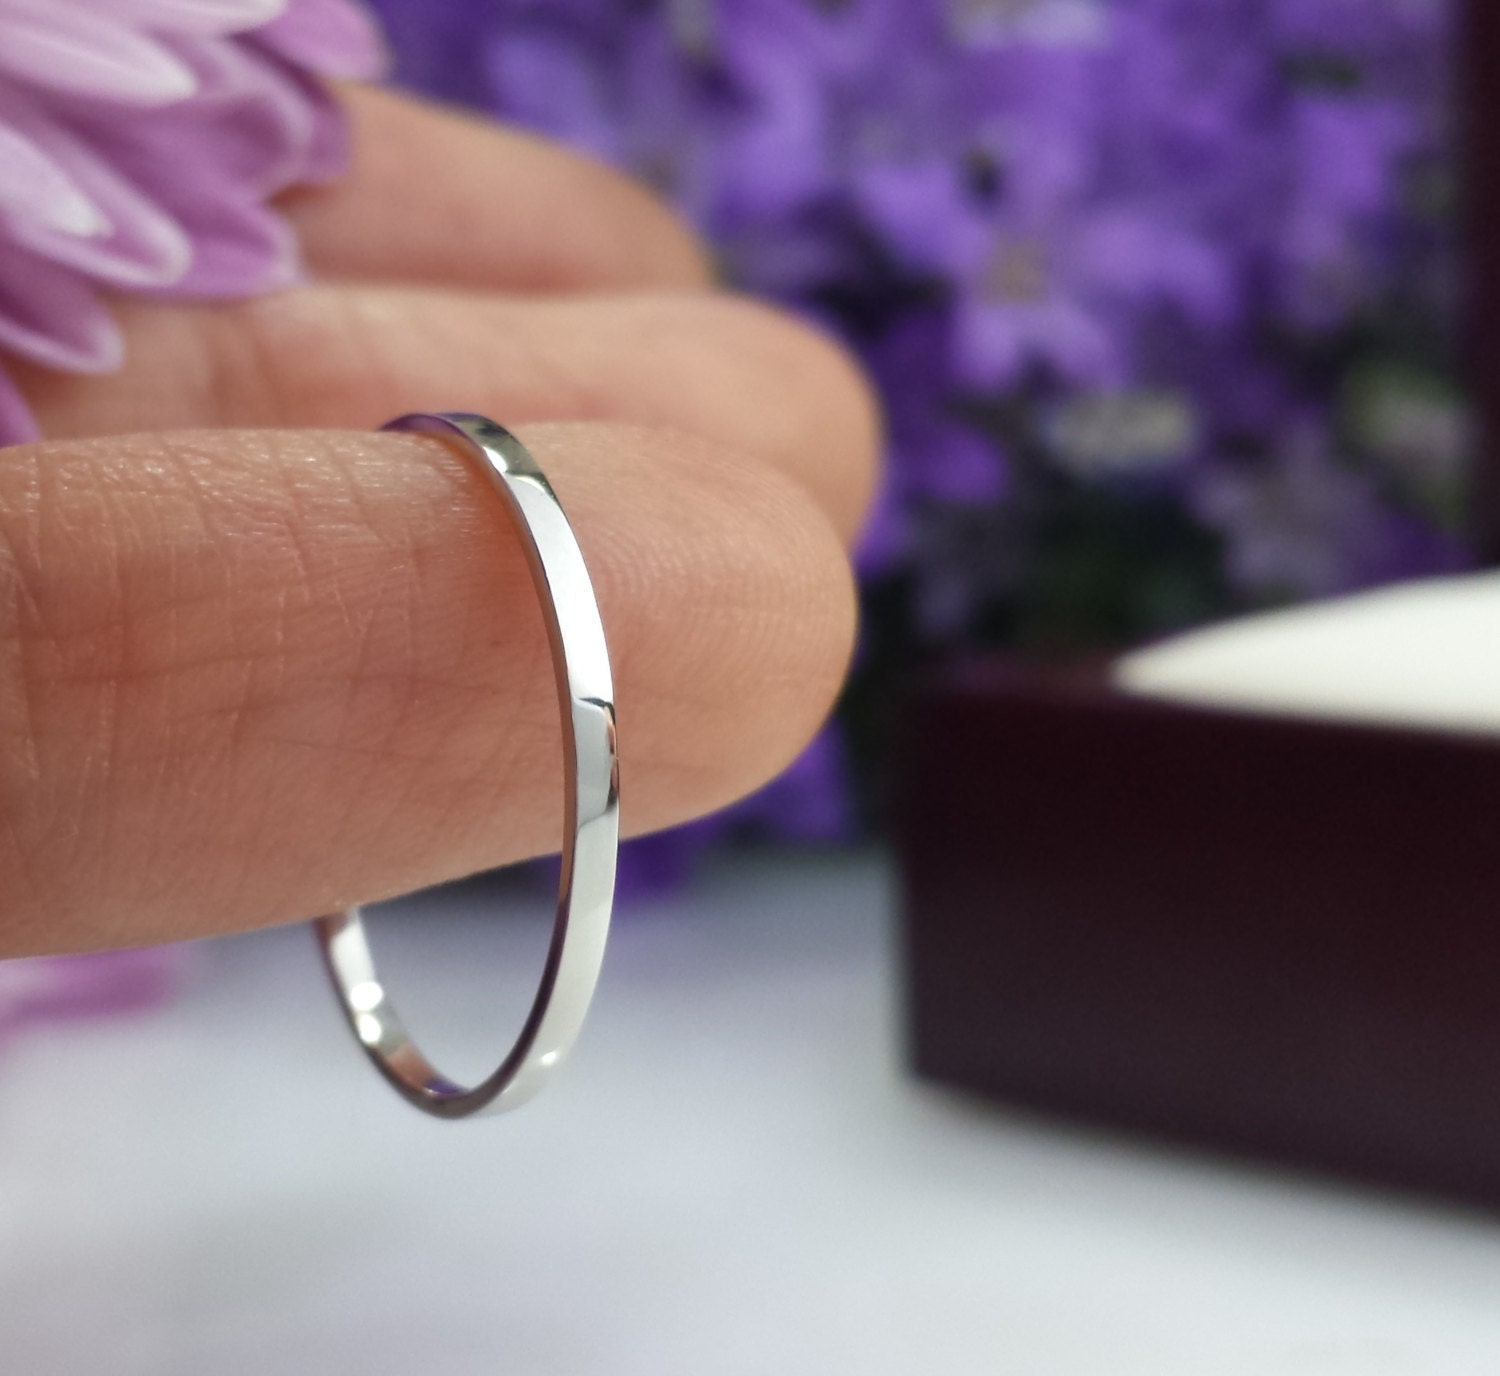 2mm wedding band 2mm wedding band Super Thin Platinum wedding band 1mm 1 5mm 2mm Hammered comfort fit matte satin domed flat platinum band slim platinum ring skinny custom